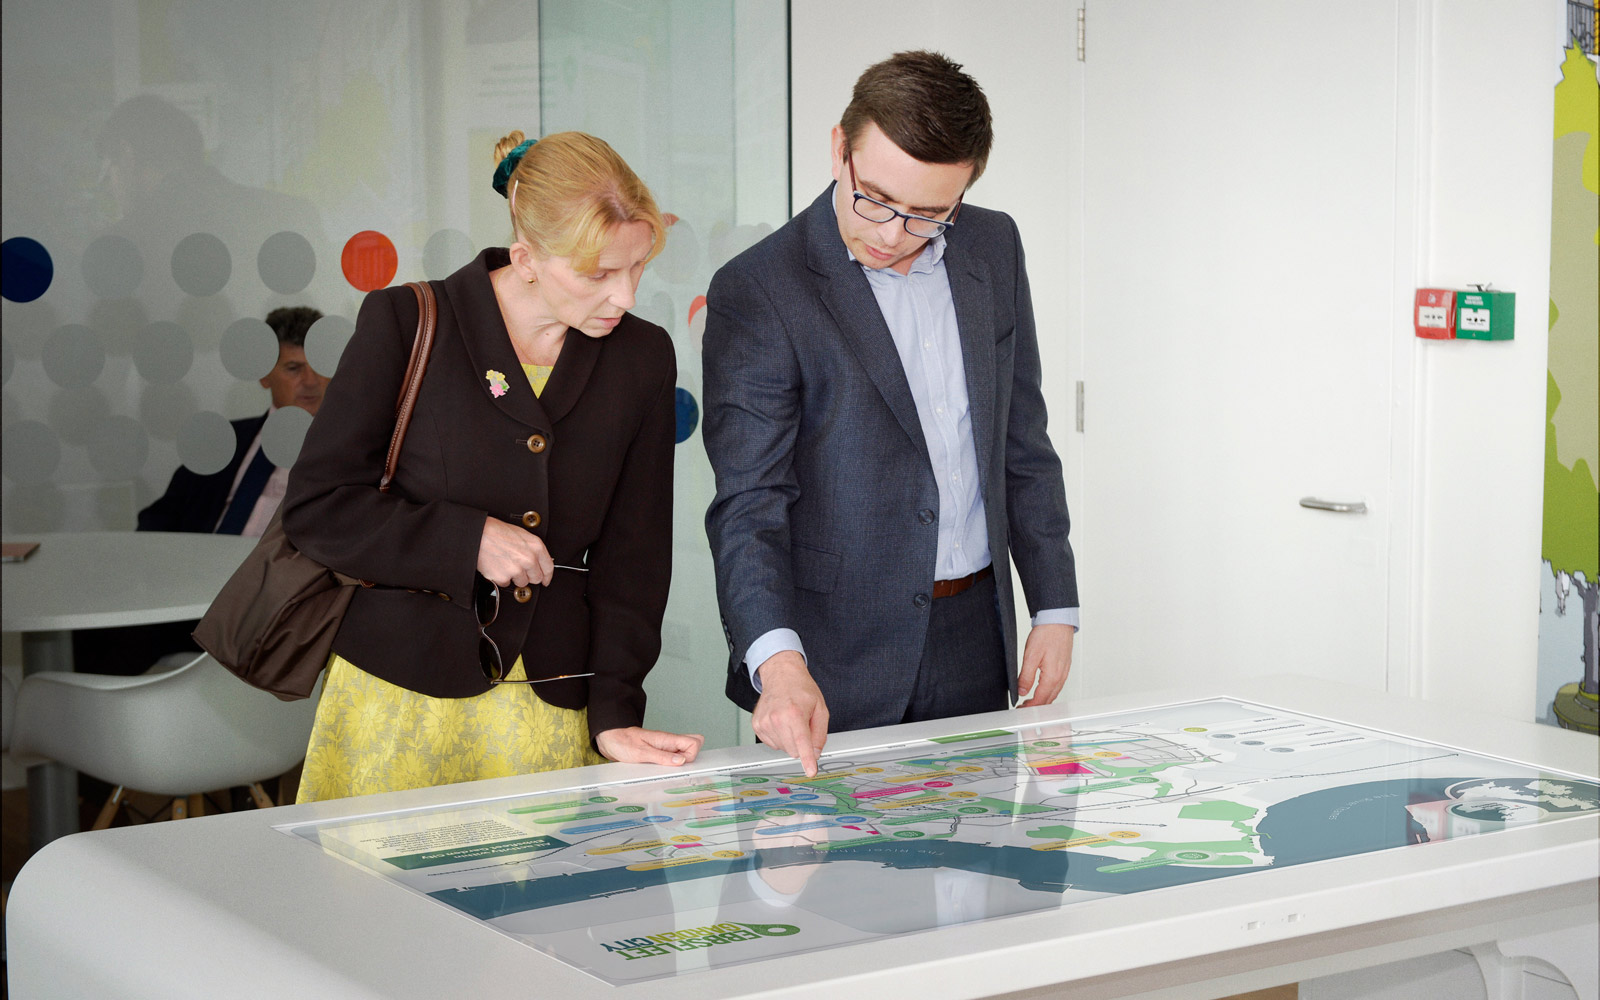 woman and man interacting with Ebbsfleet interactive touchscreen display on white table